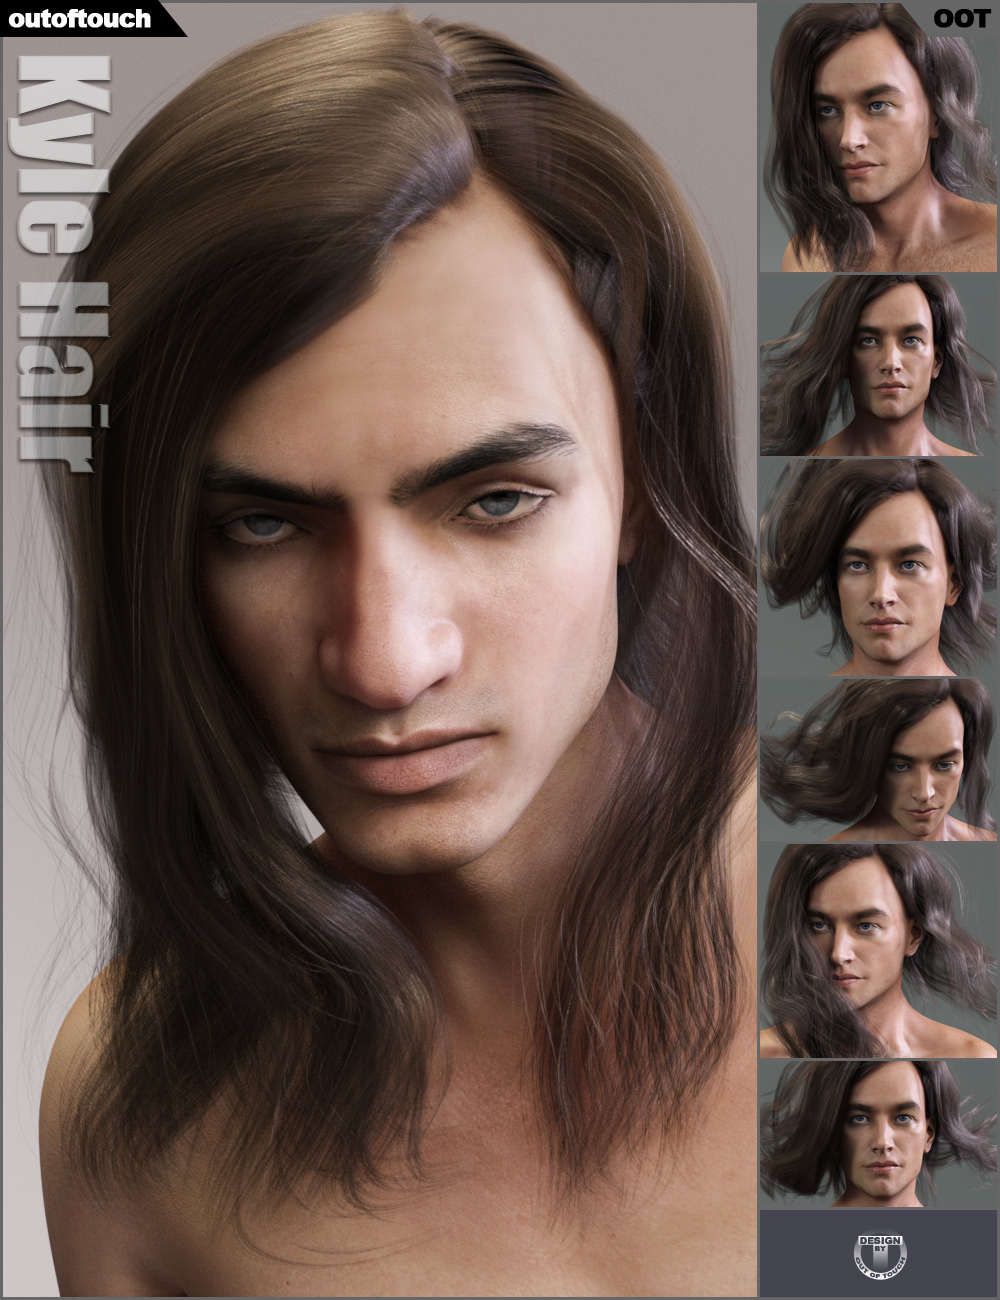 Kyle Hair by: outoftouch, 3D Models by Daz 3D